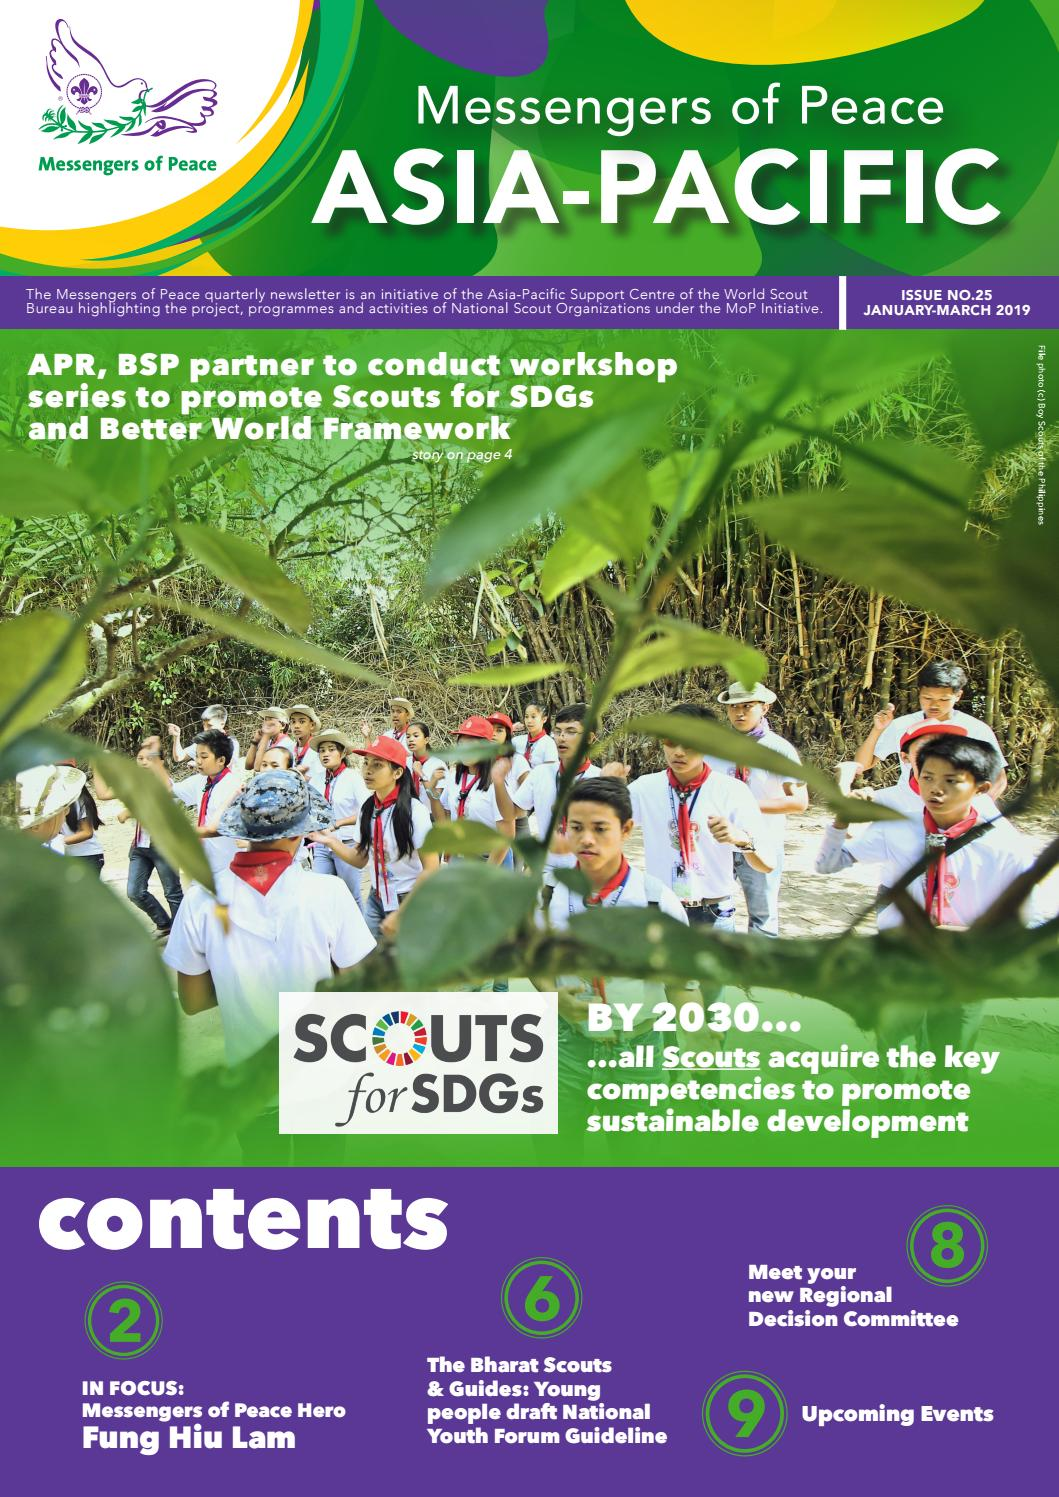 MoP Bulletin Issue No 25 by World Organization of the Scout